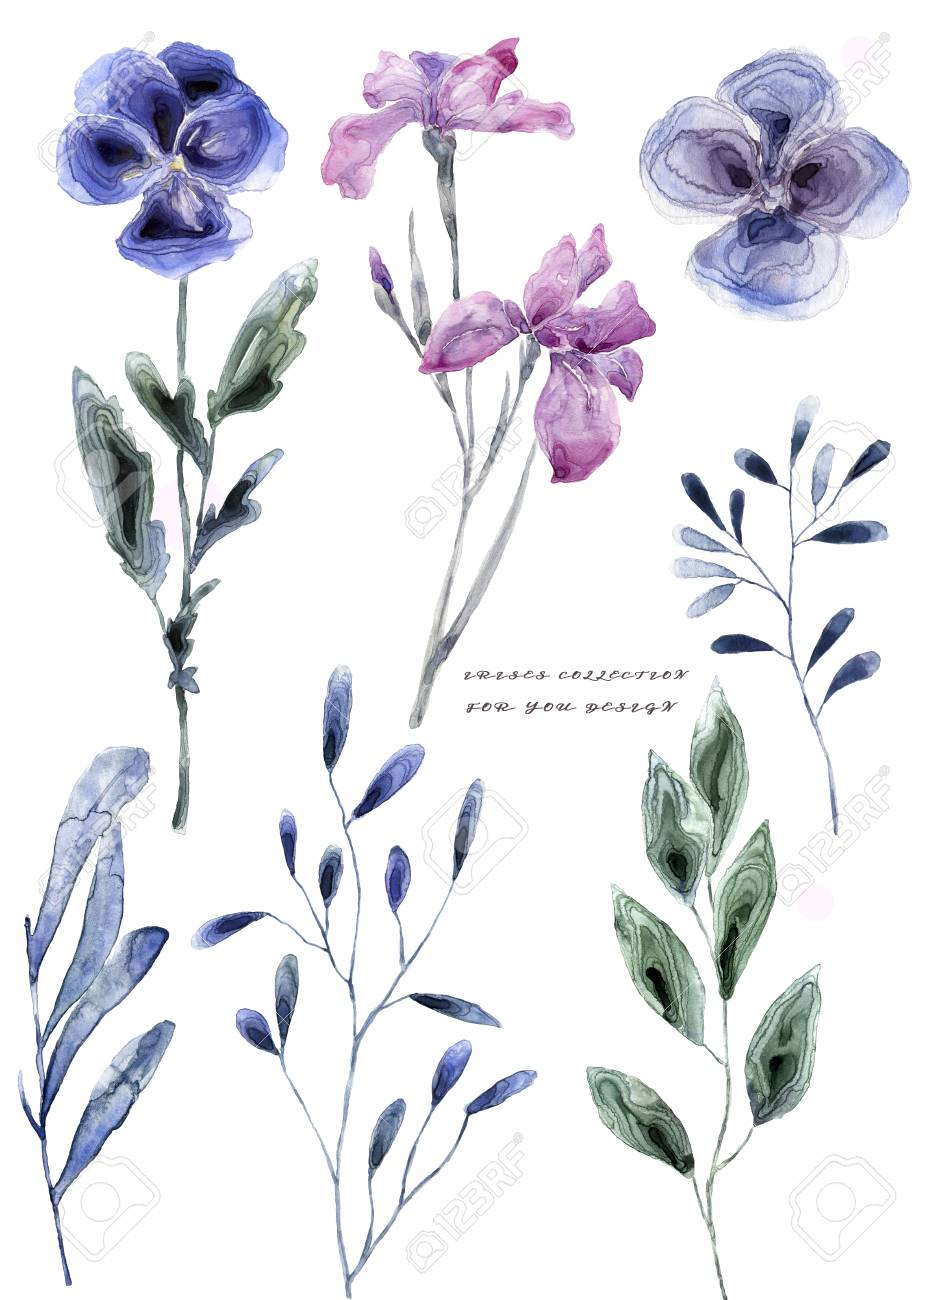 Watercolor Illustration With Iris Painting Freash Flowers On